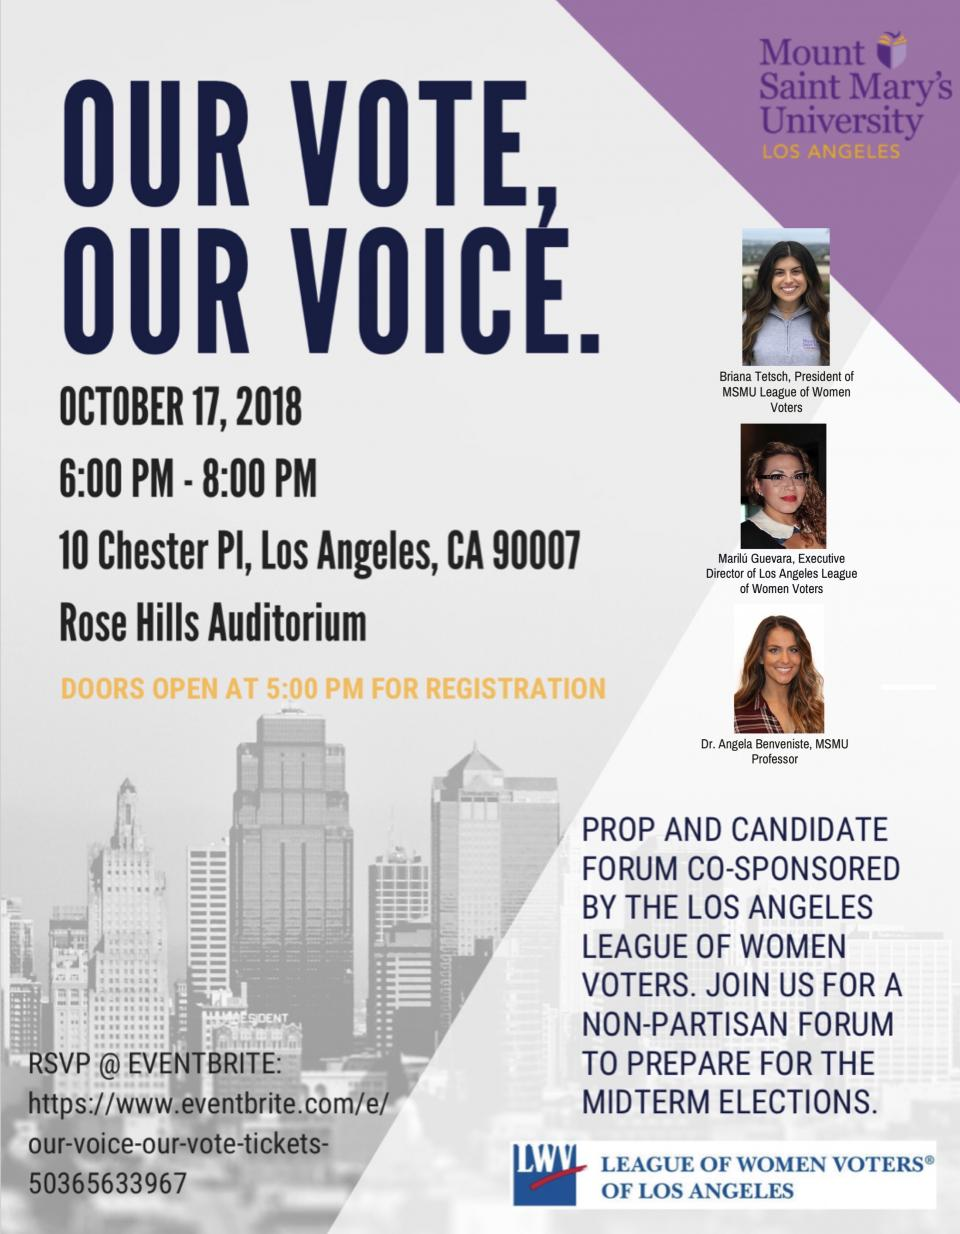 Our Voice Our Vote - MSMU